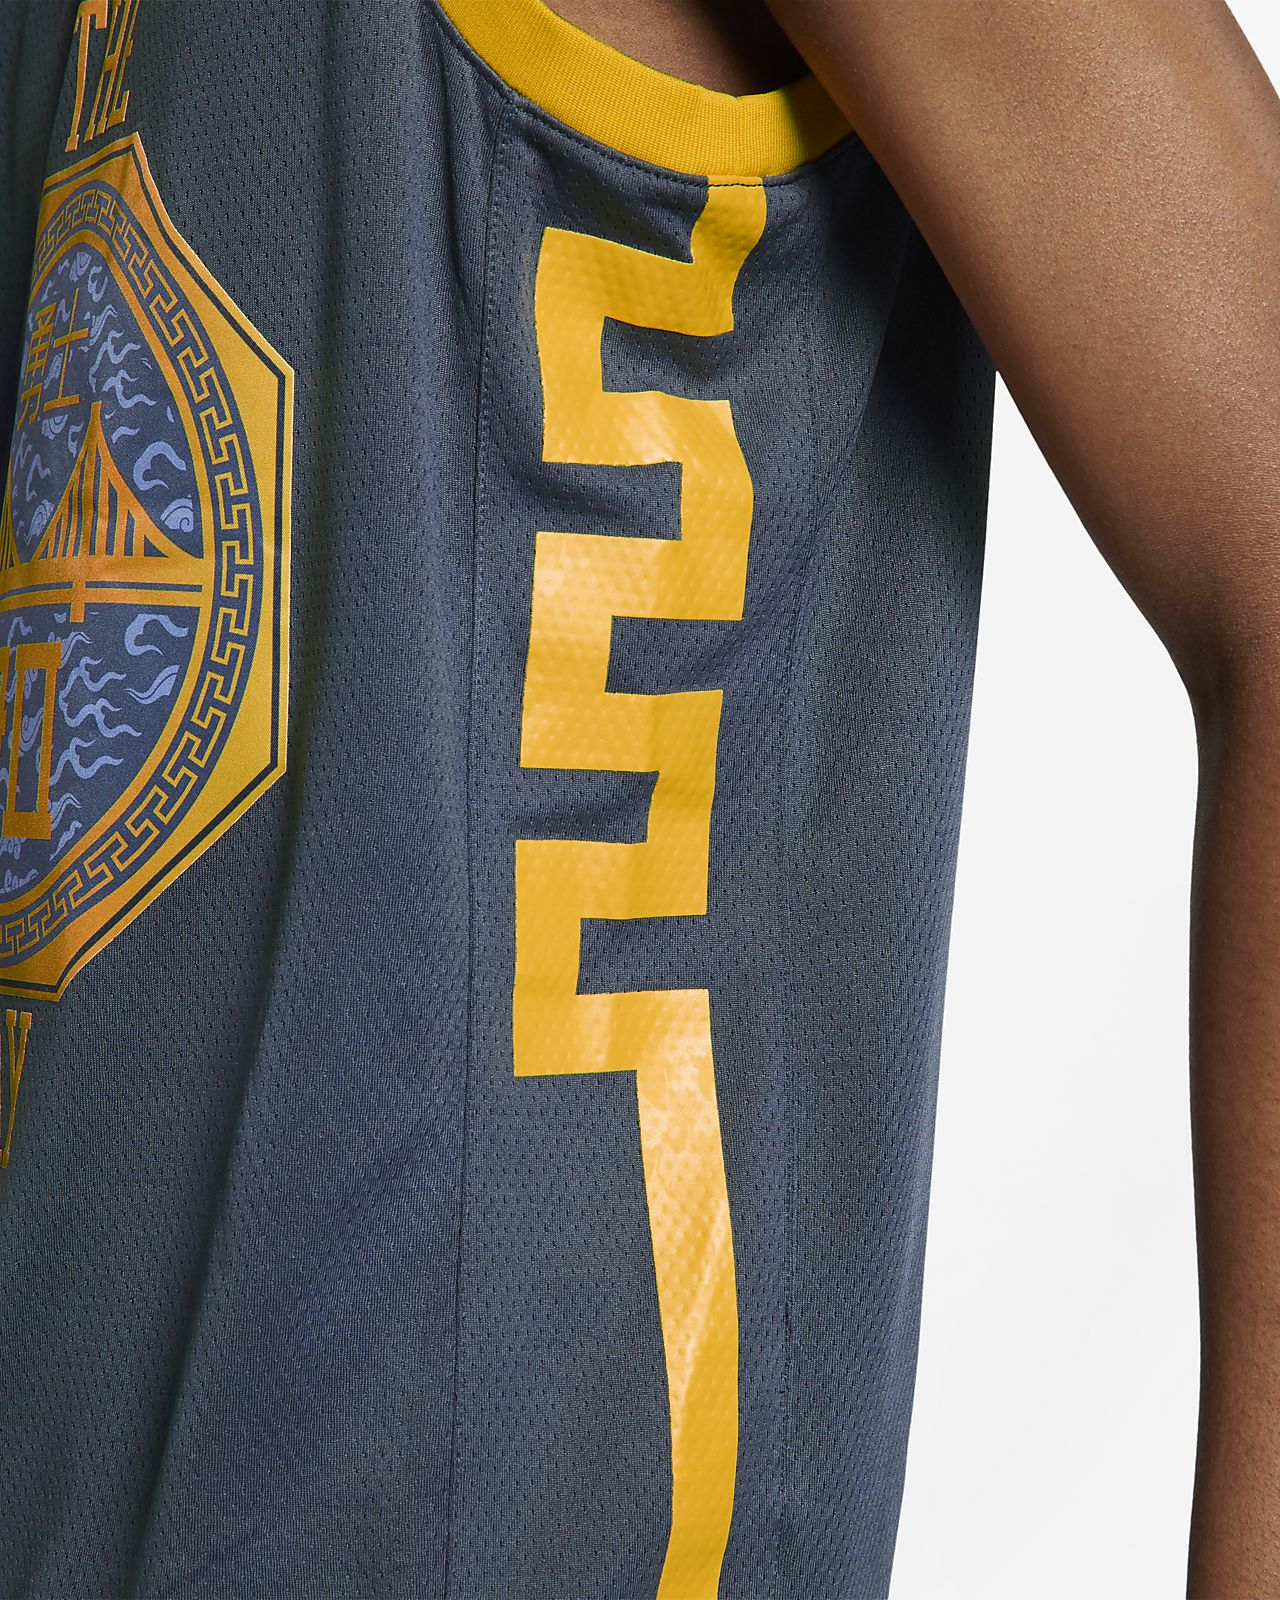 a2e423a7269 ... Stephen Curry City Edition Swingman (Golden State Warriors) Men s Nike  NBA Connected Jersey